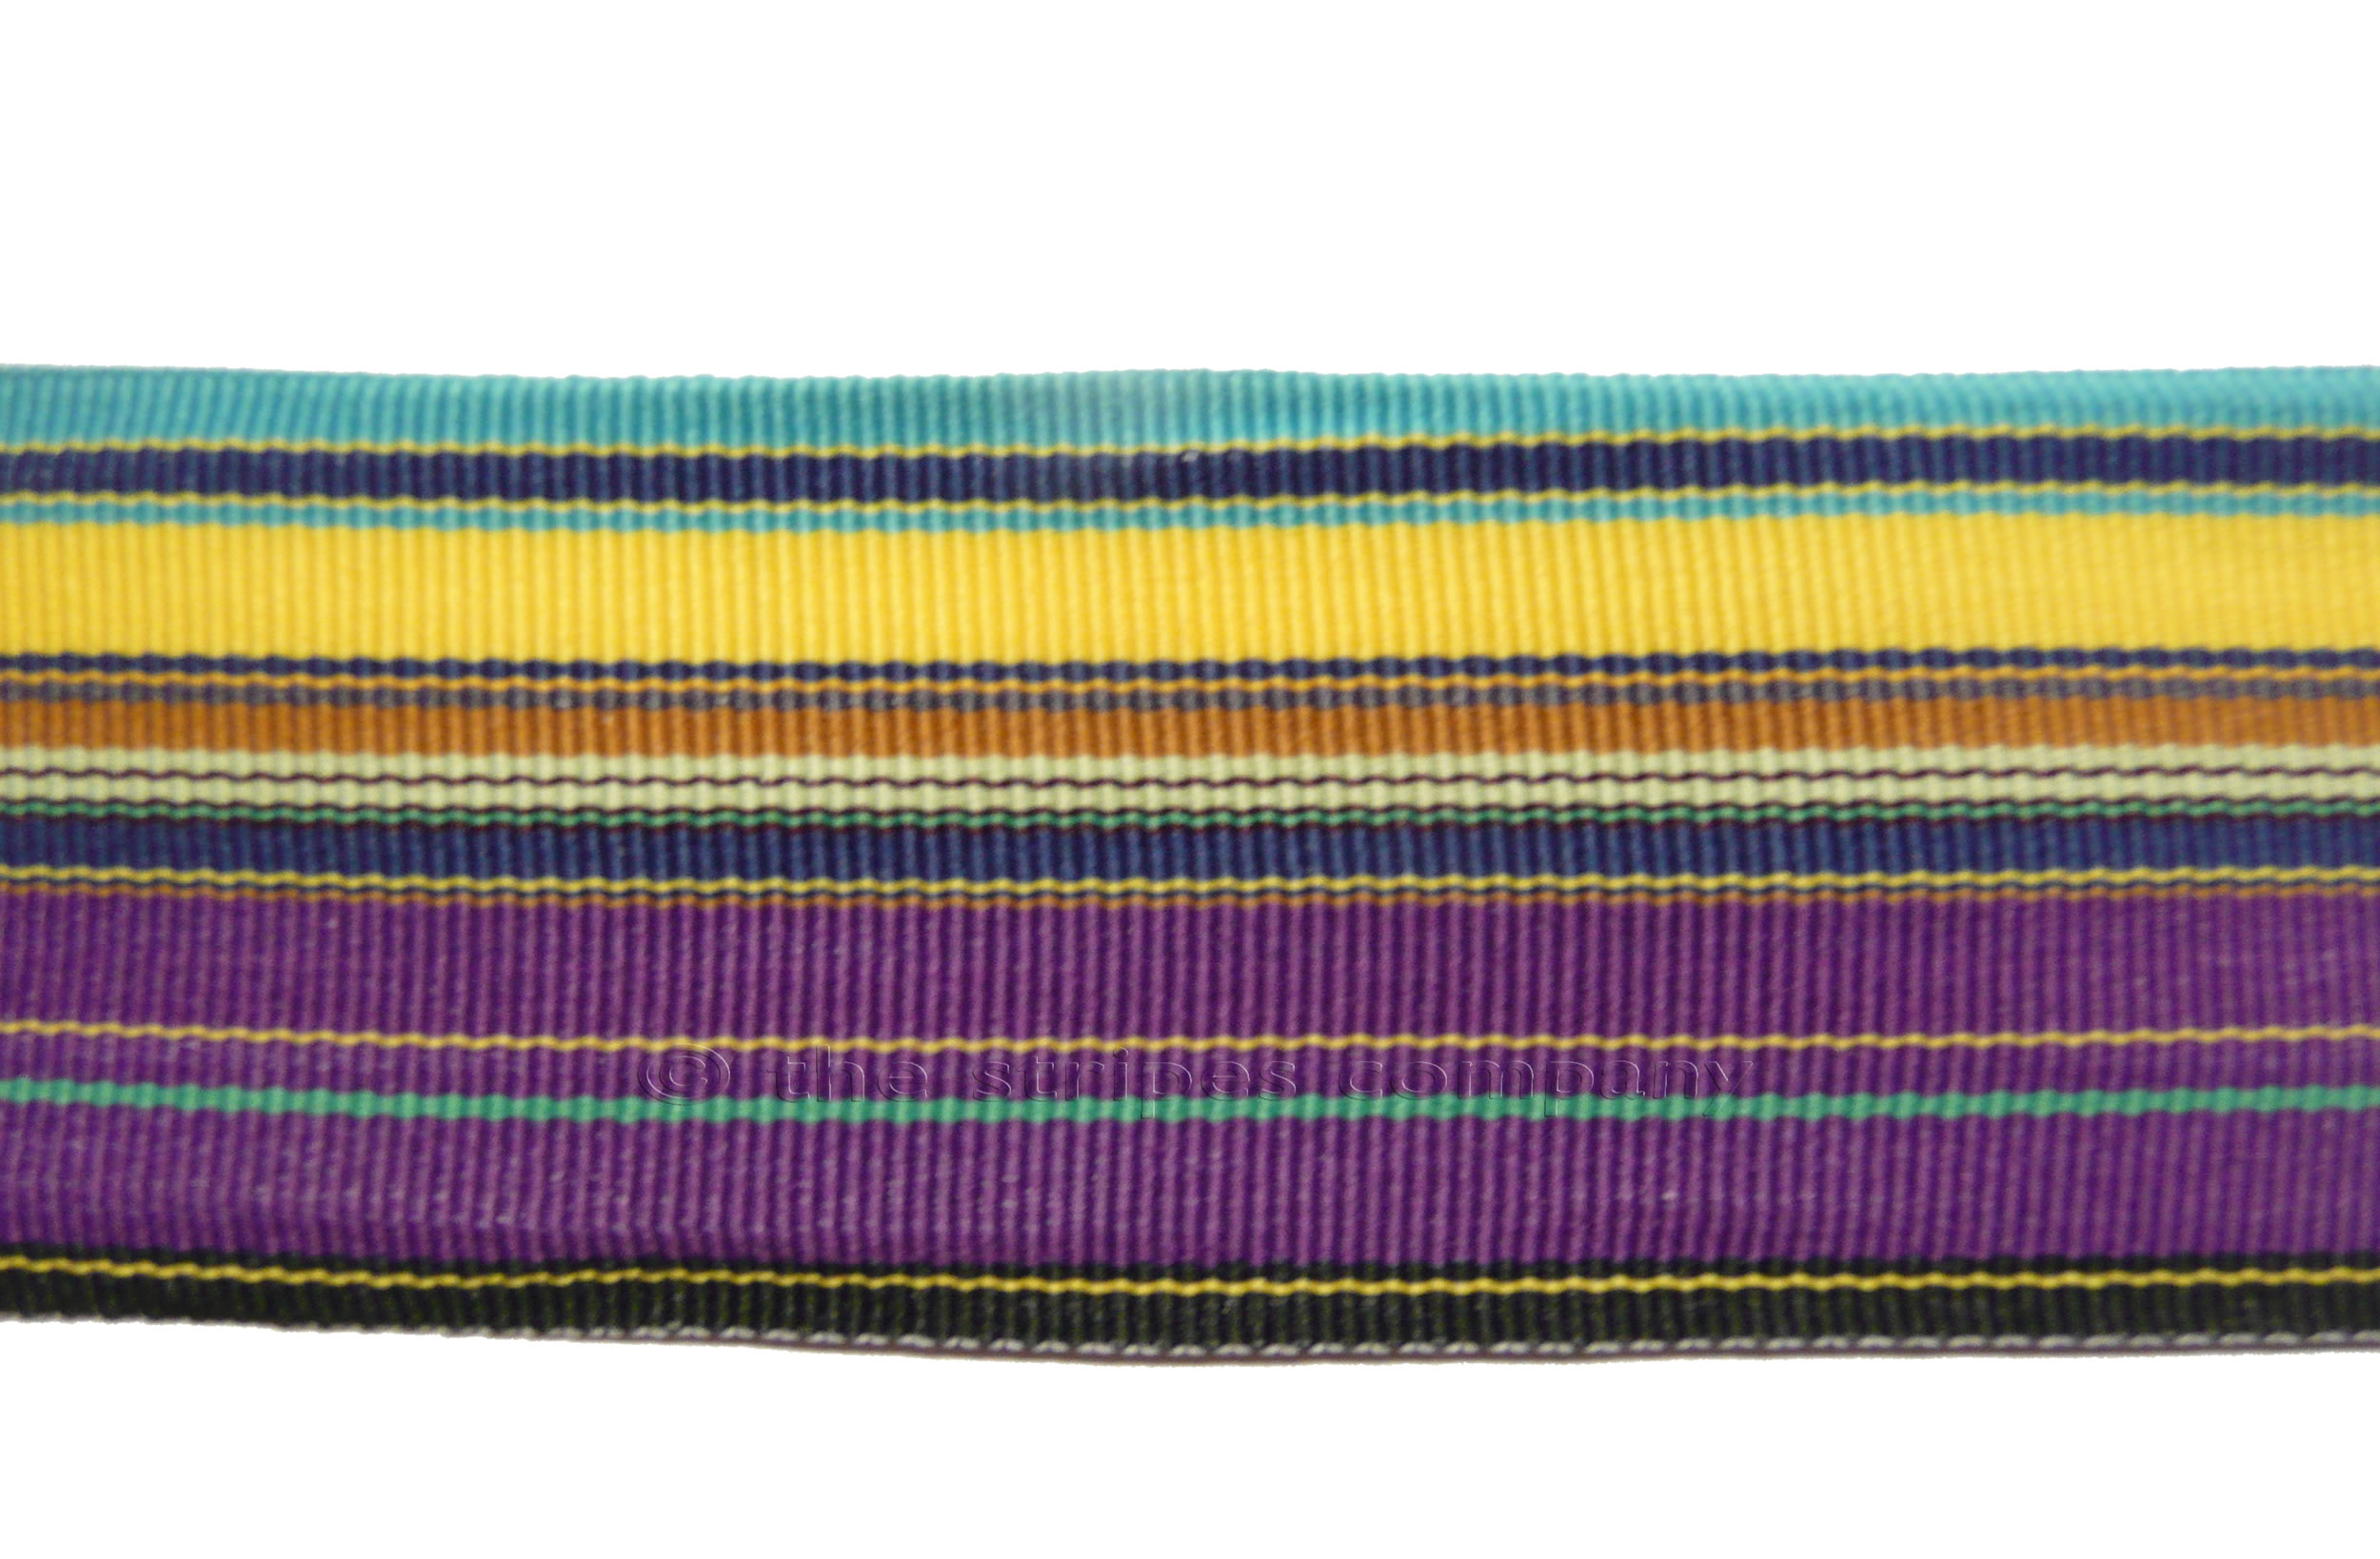 Simply magnificent thin thick striped ribbon